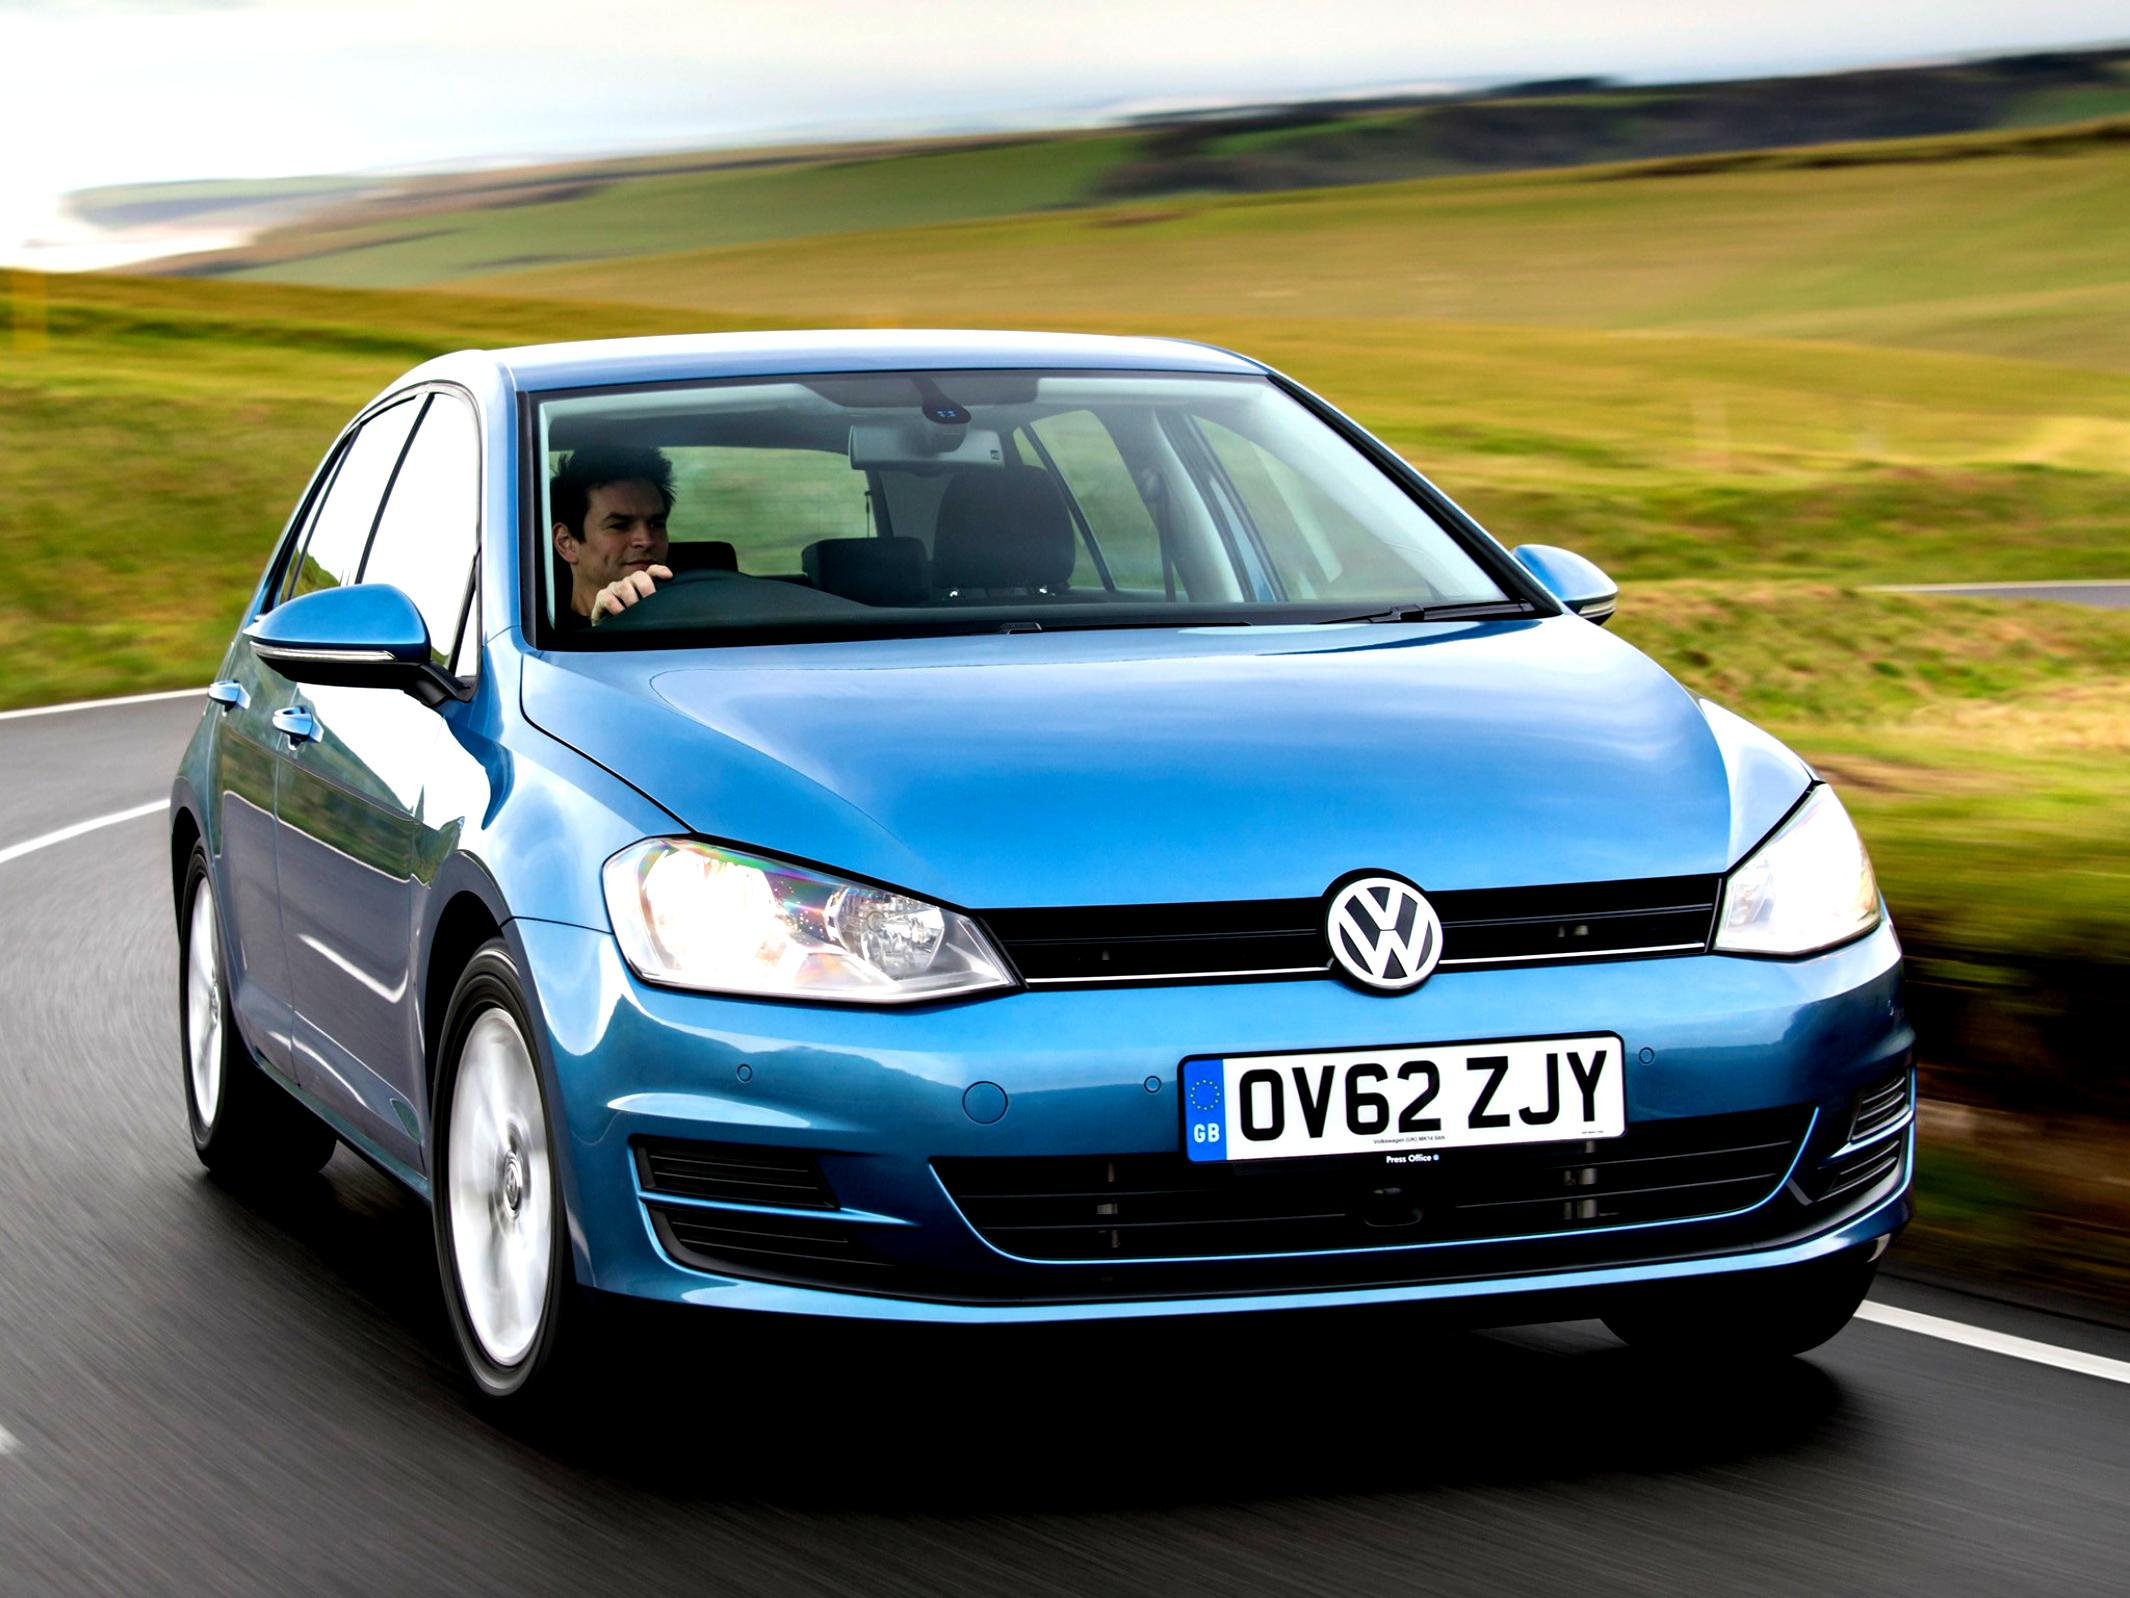 Volkswagen Golf VII 5 Doors 2012 #62